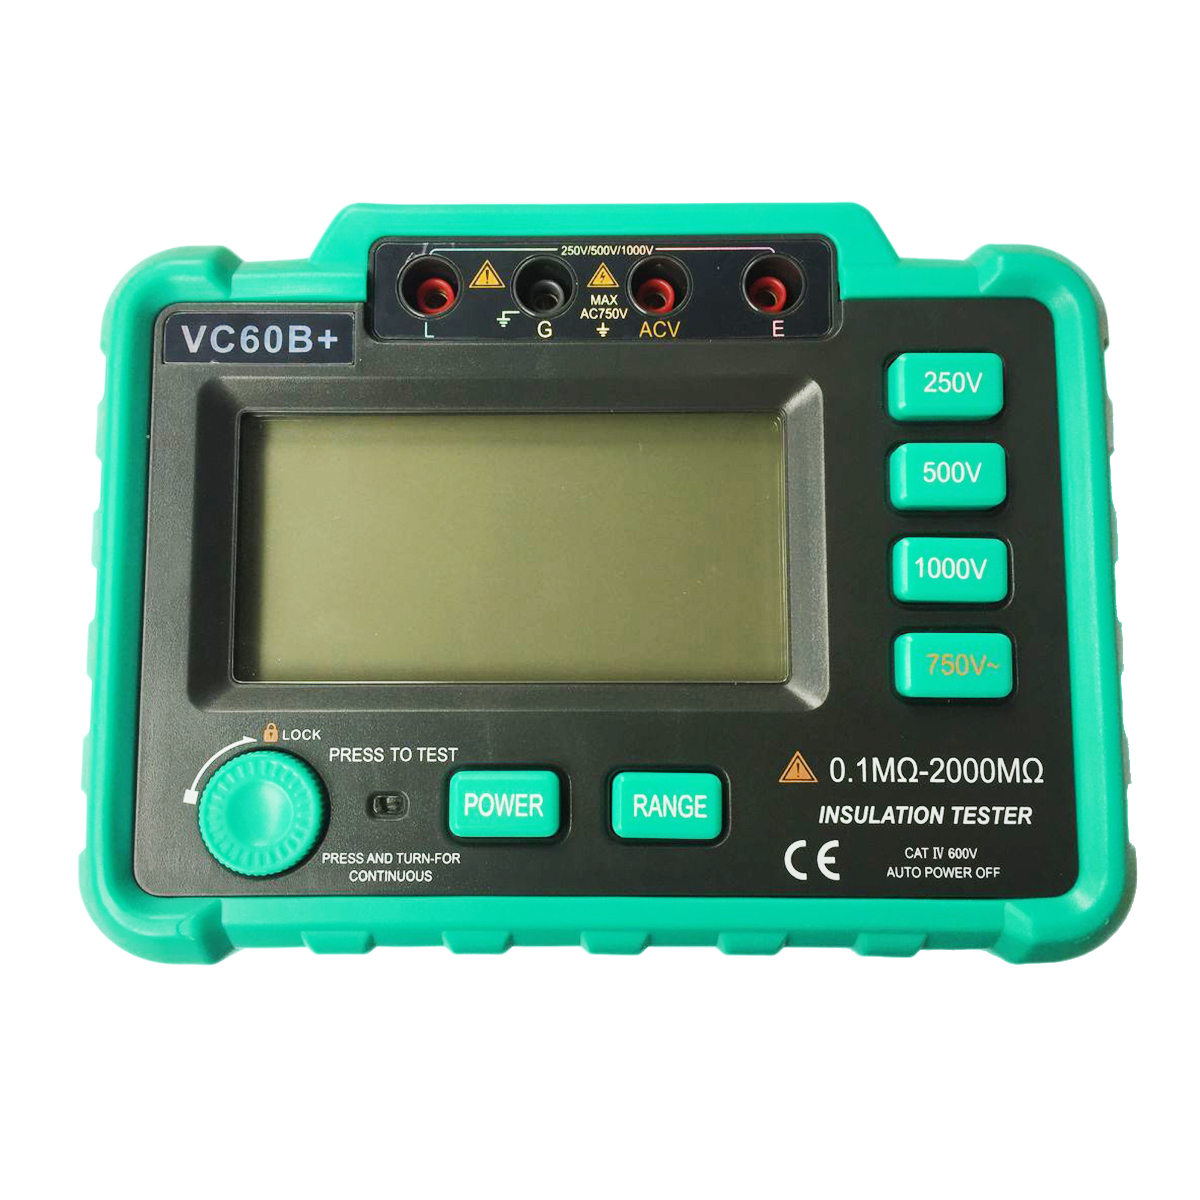 GTBL VC60B+ Digital Insulation Resistance Tester Megohm Meter Megohmmeter earth ground resistance impedance tester DC250V/500V цена